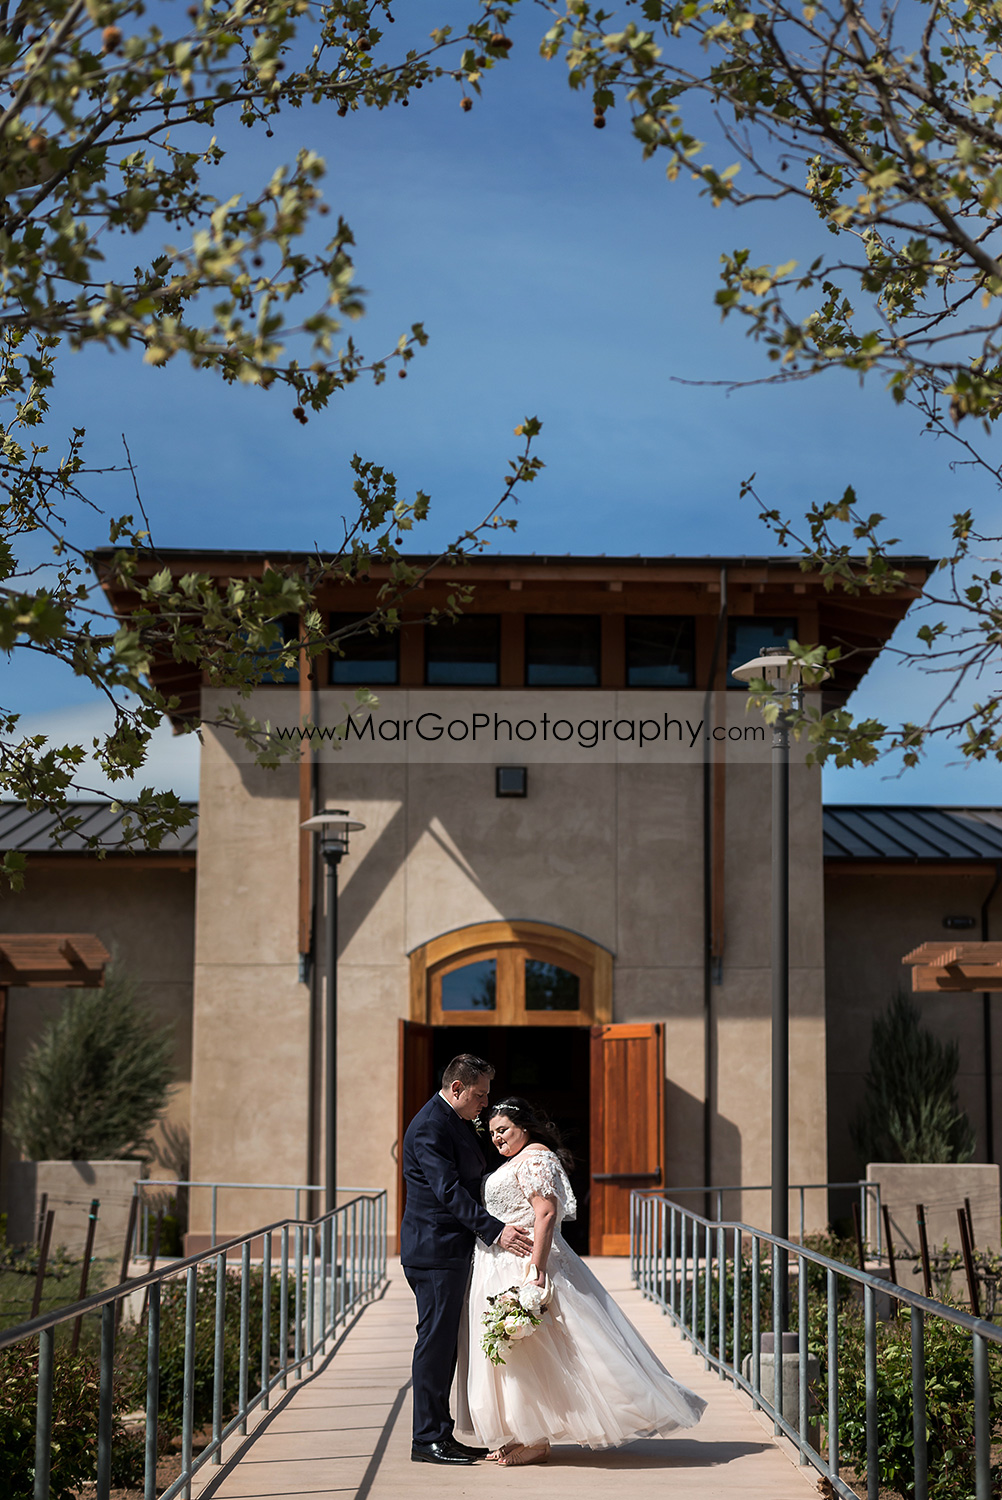 full body portrait of bride and groom looking at each other in front of the main entrance to Livermore Garre Vineyard and Winery